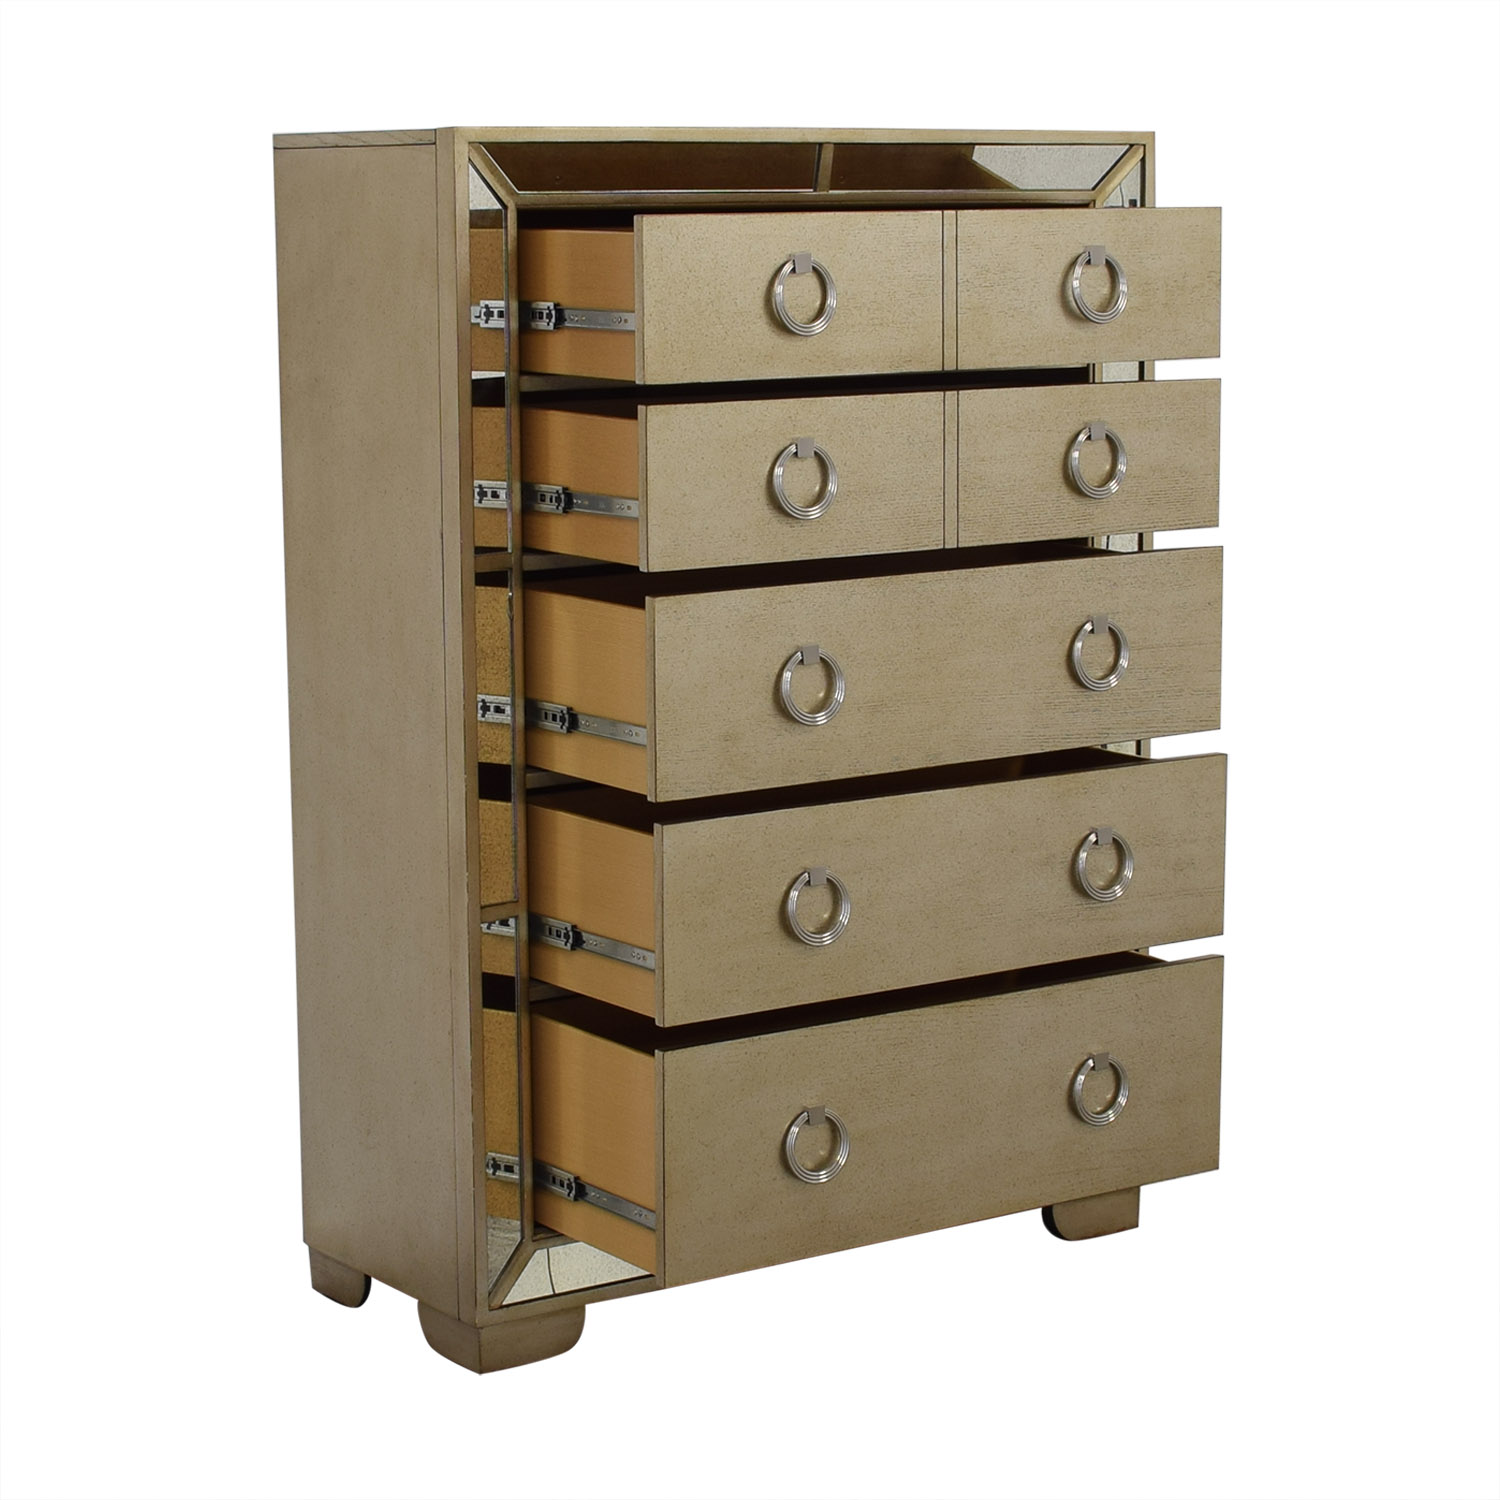 Macy's Macy's Ailey Five Drawer Chest for sale